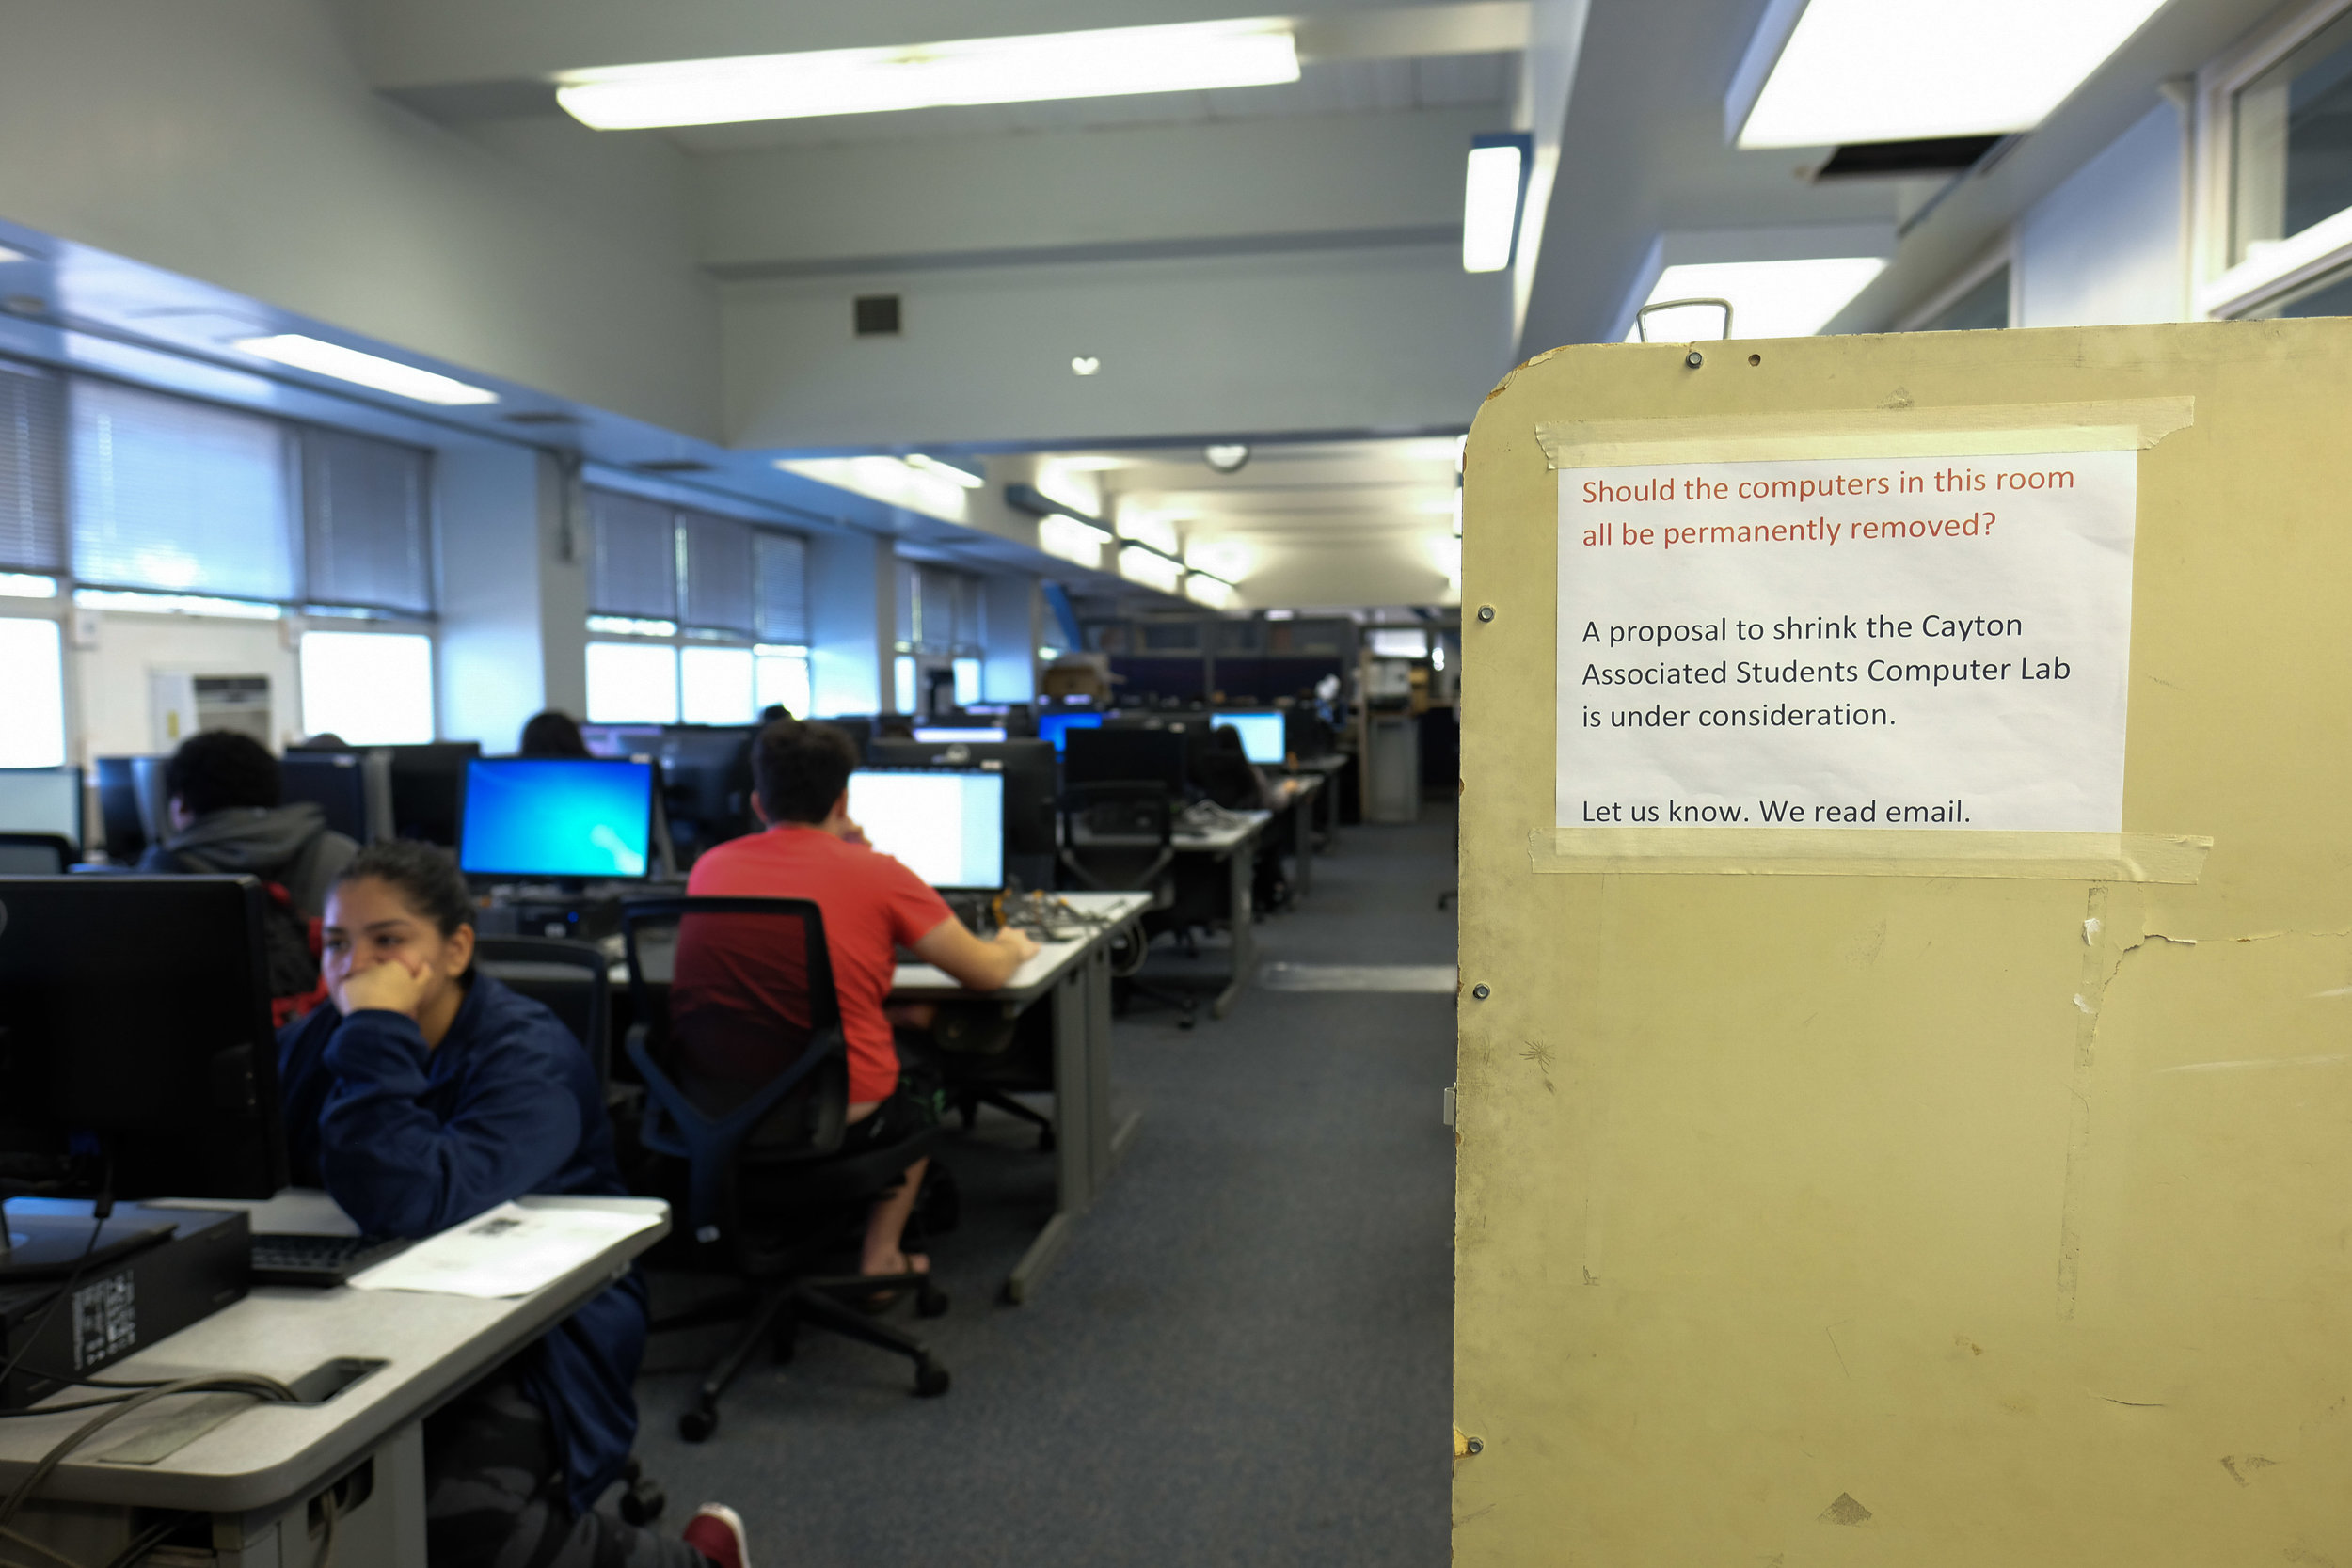 A sign posted to demonstrate the amount of workstations that would be removed in order to put the new Gender Equity Center in the Associated Students computer lab. 50 of the 82 workstations will be removed in order to put this plan into place. The Associated Students Computer lab is located at the Cayton Center on Santa Monica College's main campus in Santa Monica, CALIF on November 28, 2017. (Photo by Jayrol San Jose)